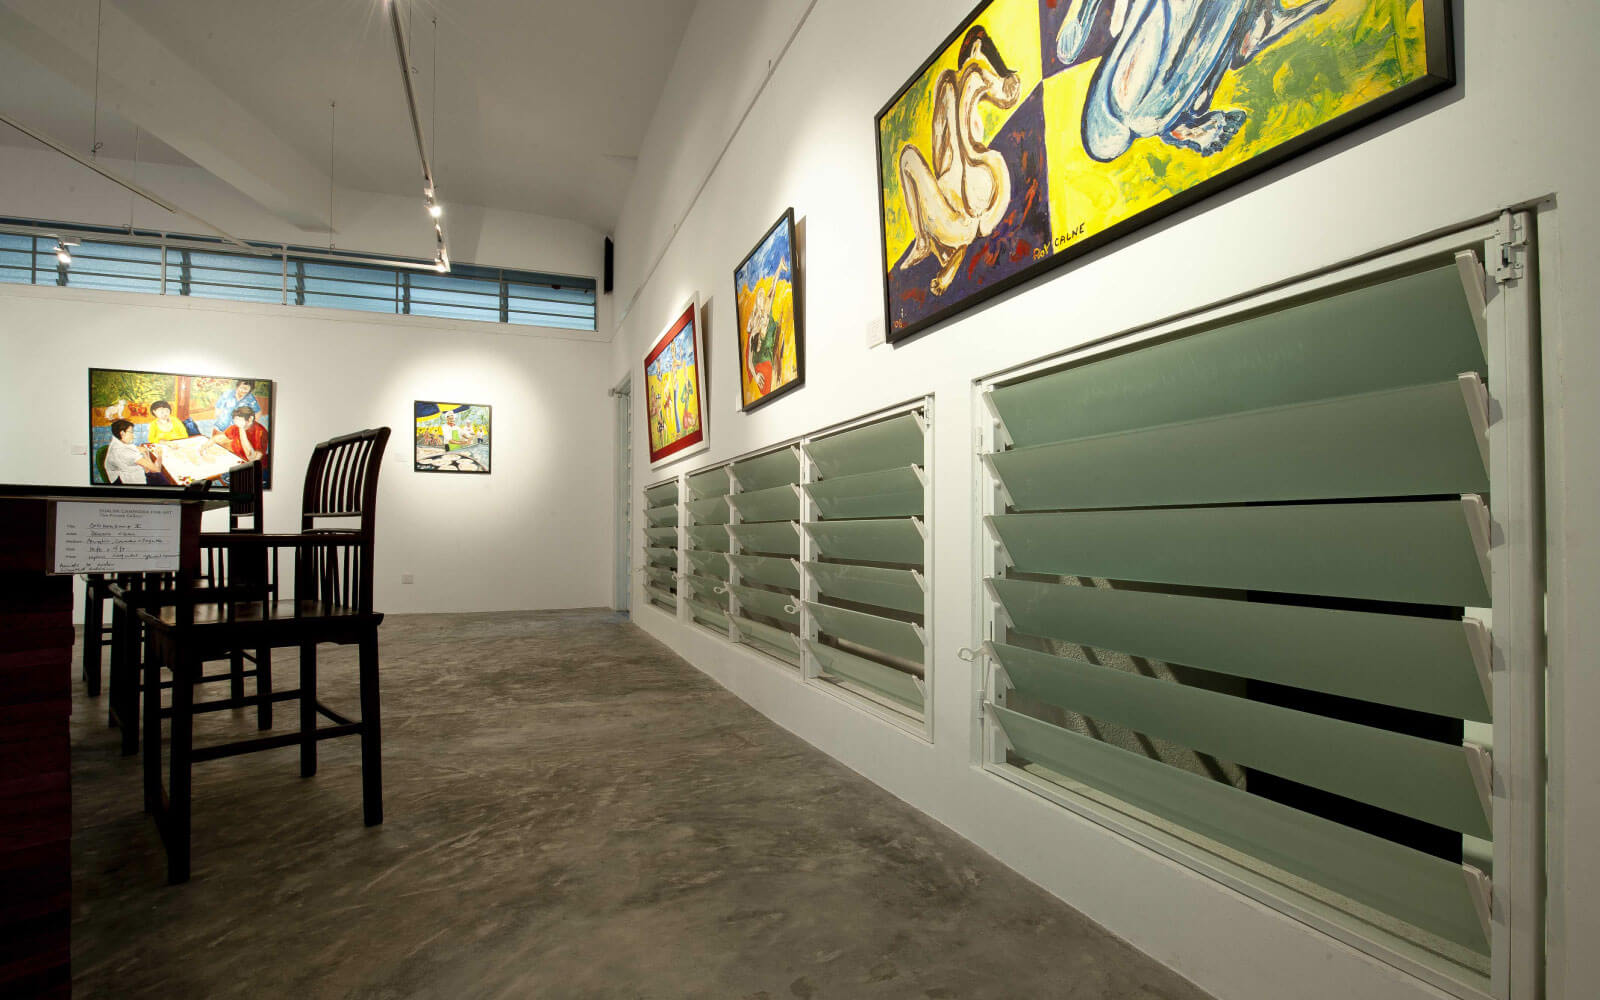 Image 3 for Ganendra Art house glass louvers and Green architect features